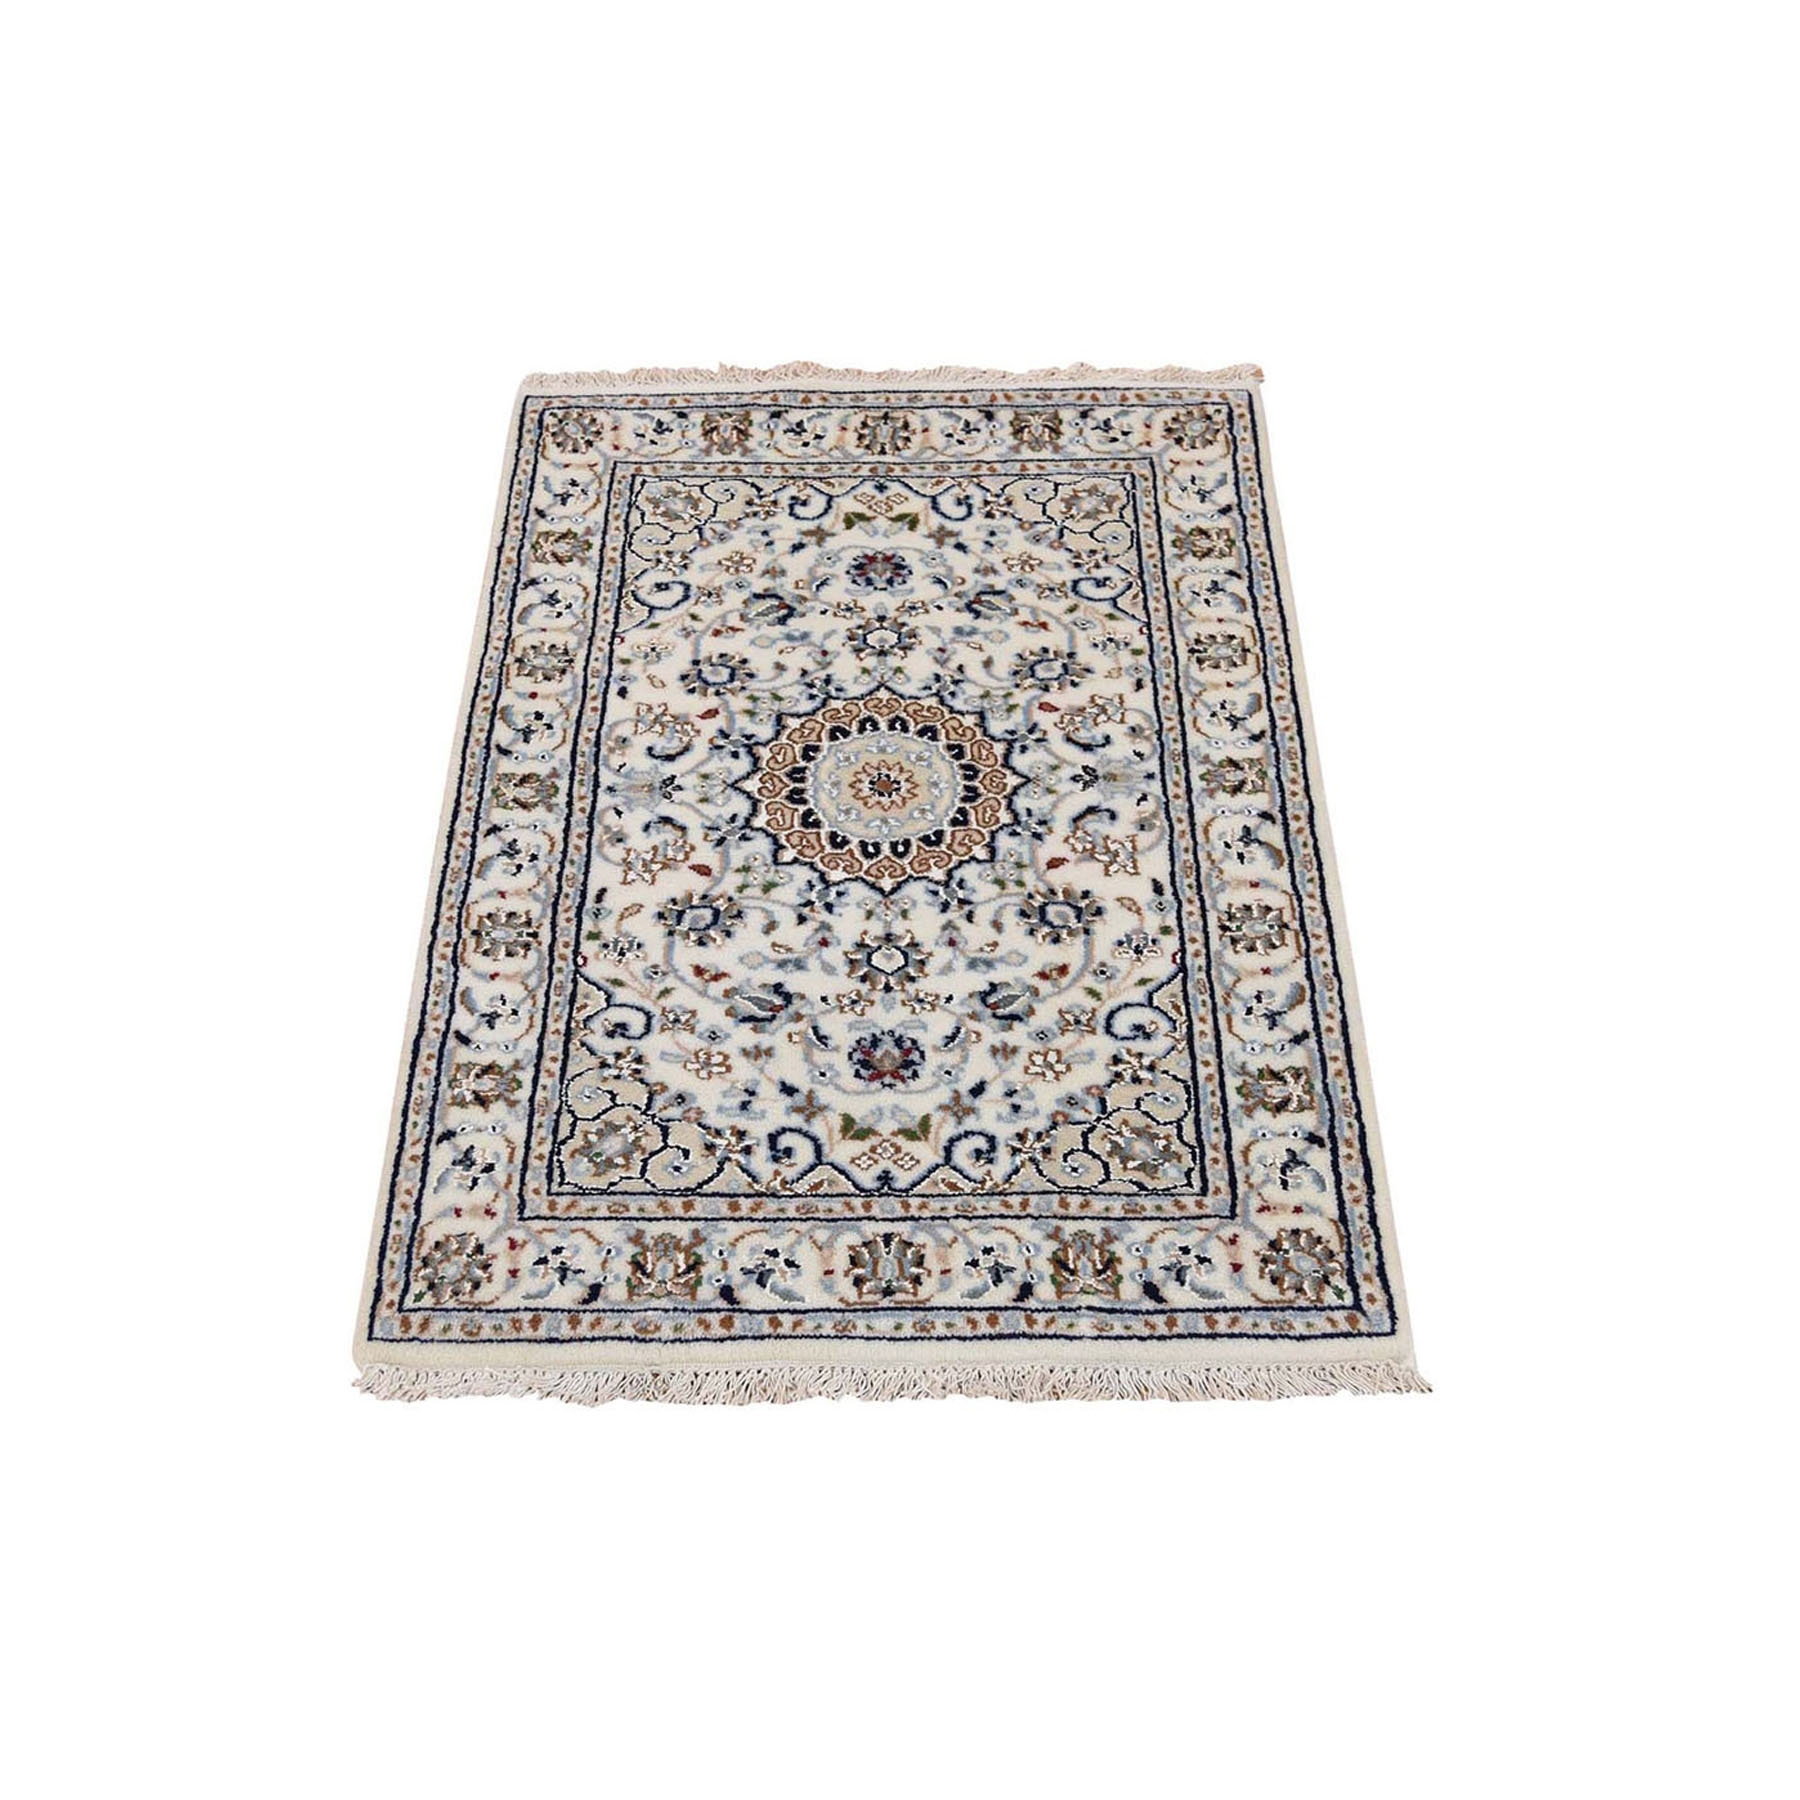 "2'1""x3'2"" Ivory Nain Wool And Silk 250 KPSI Hand Woven Oriental Rug"